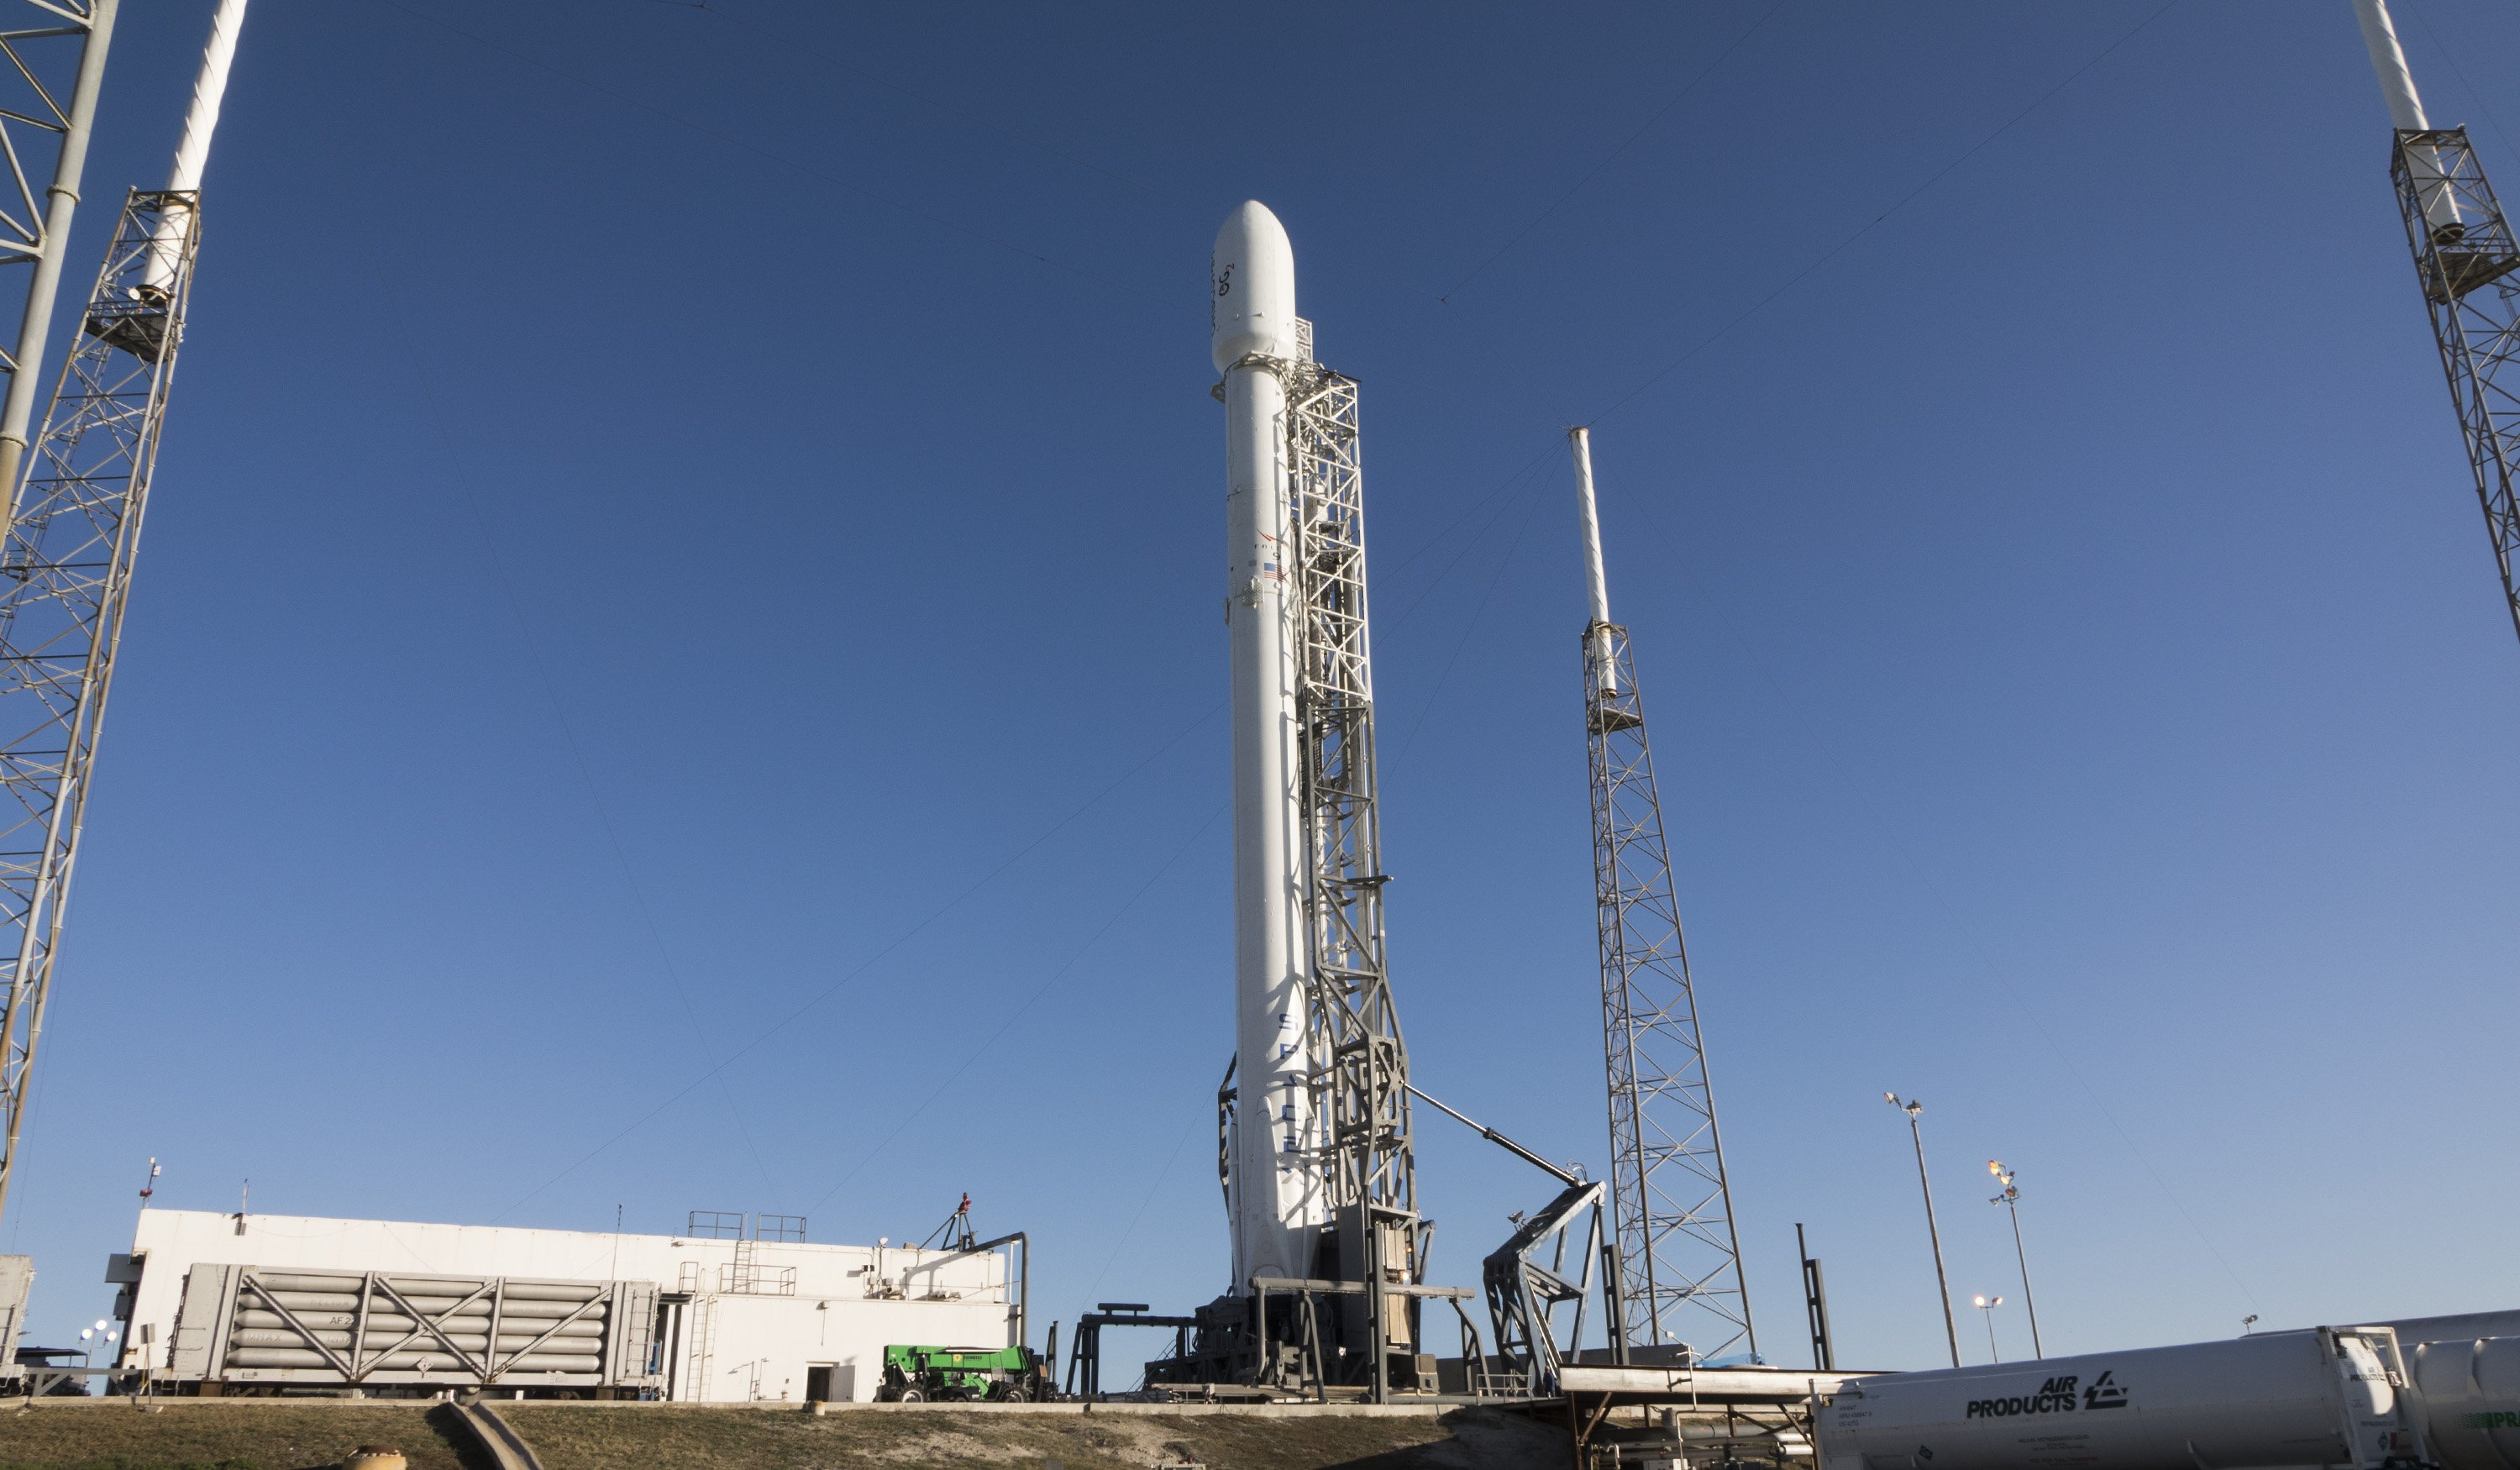 spacex transportation - photo #16